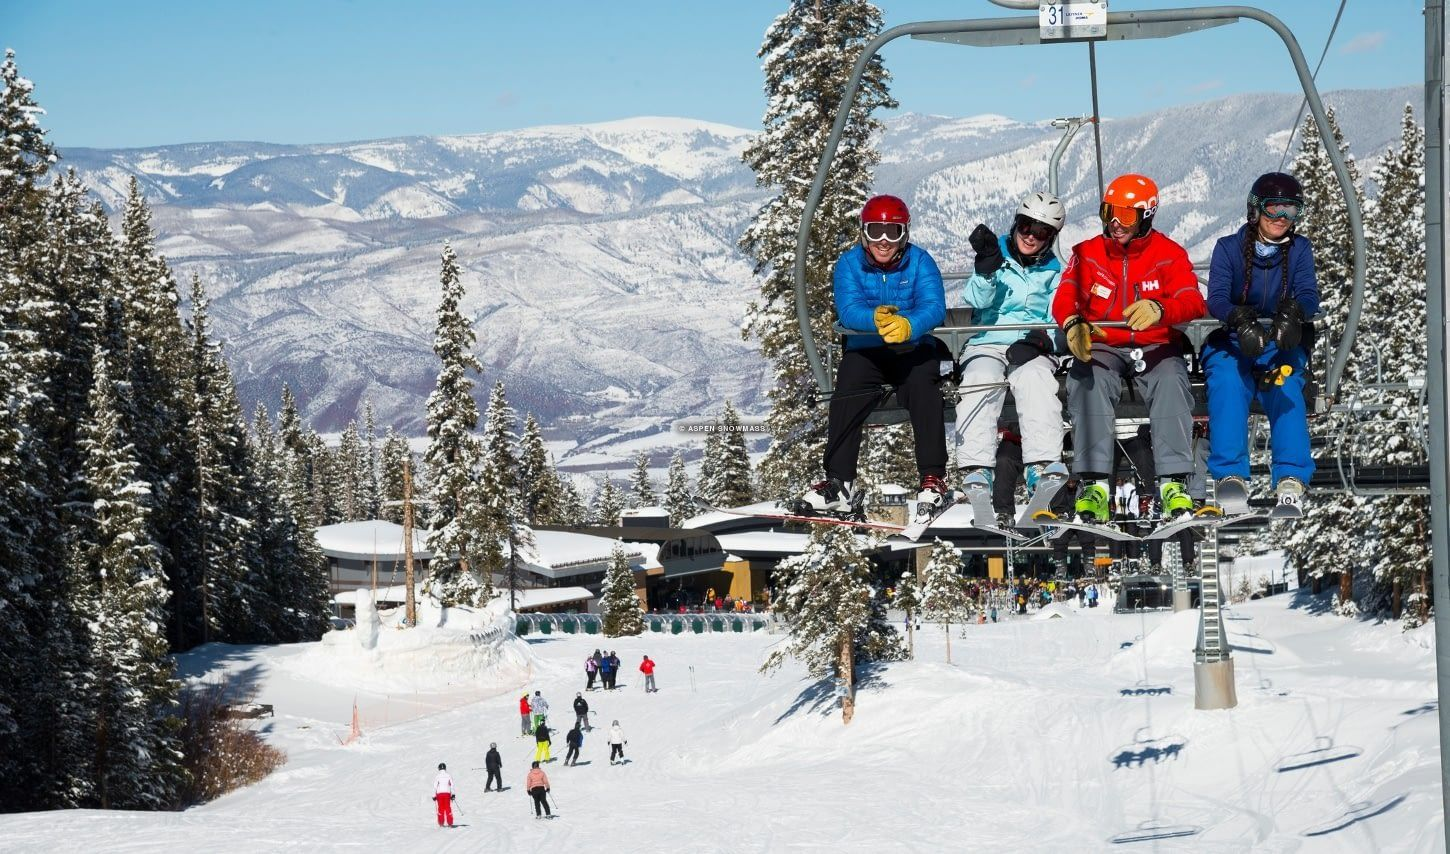 Learn more about top resorts for beginners and find your